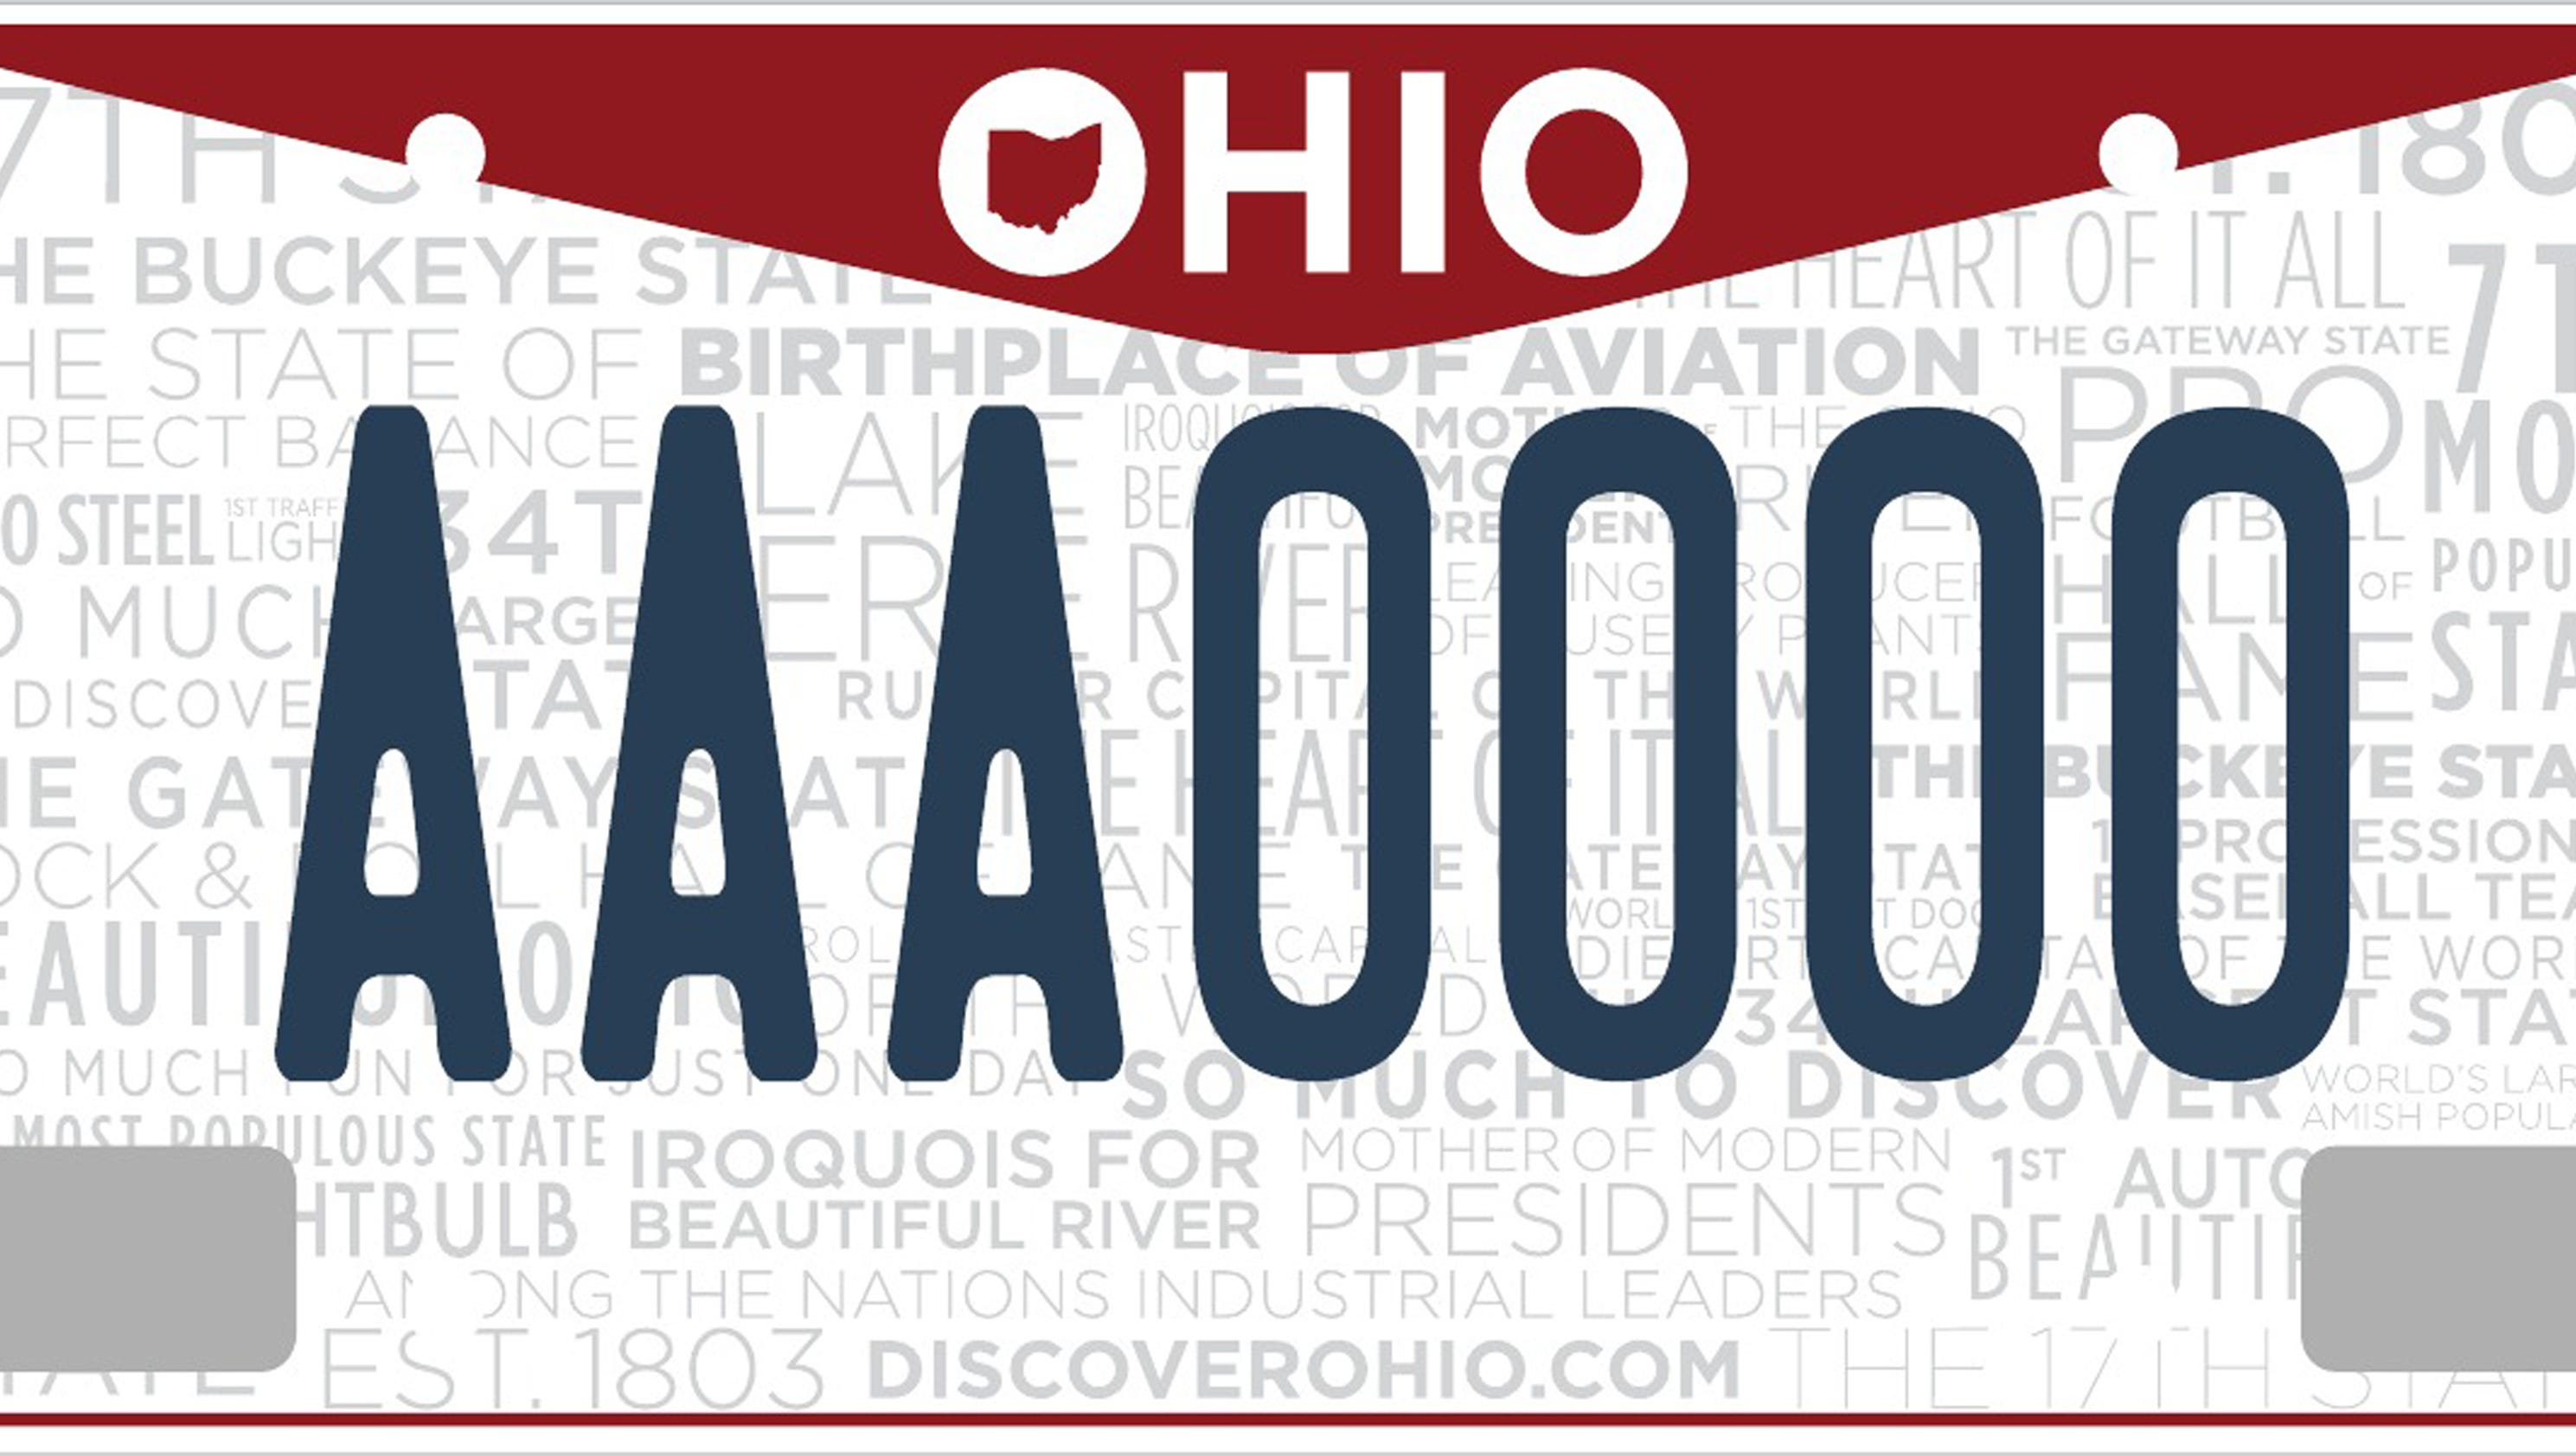 Here are all 403 personalized license plates denied by Ohio last year